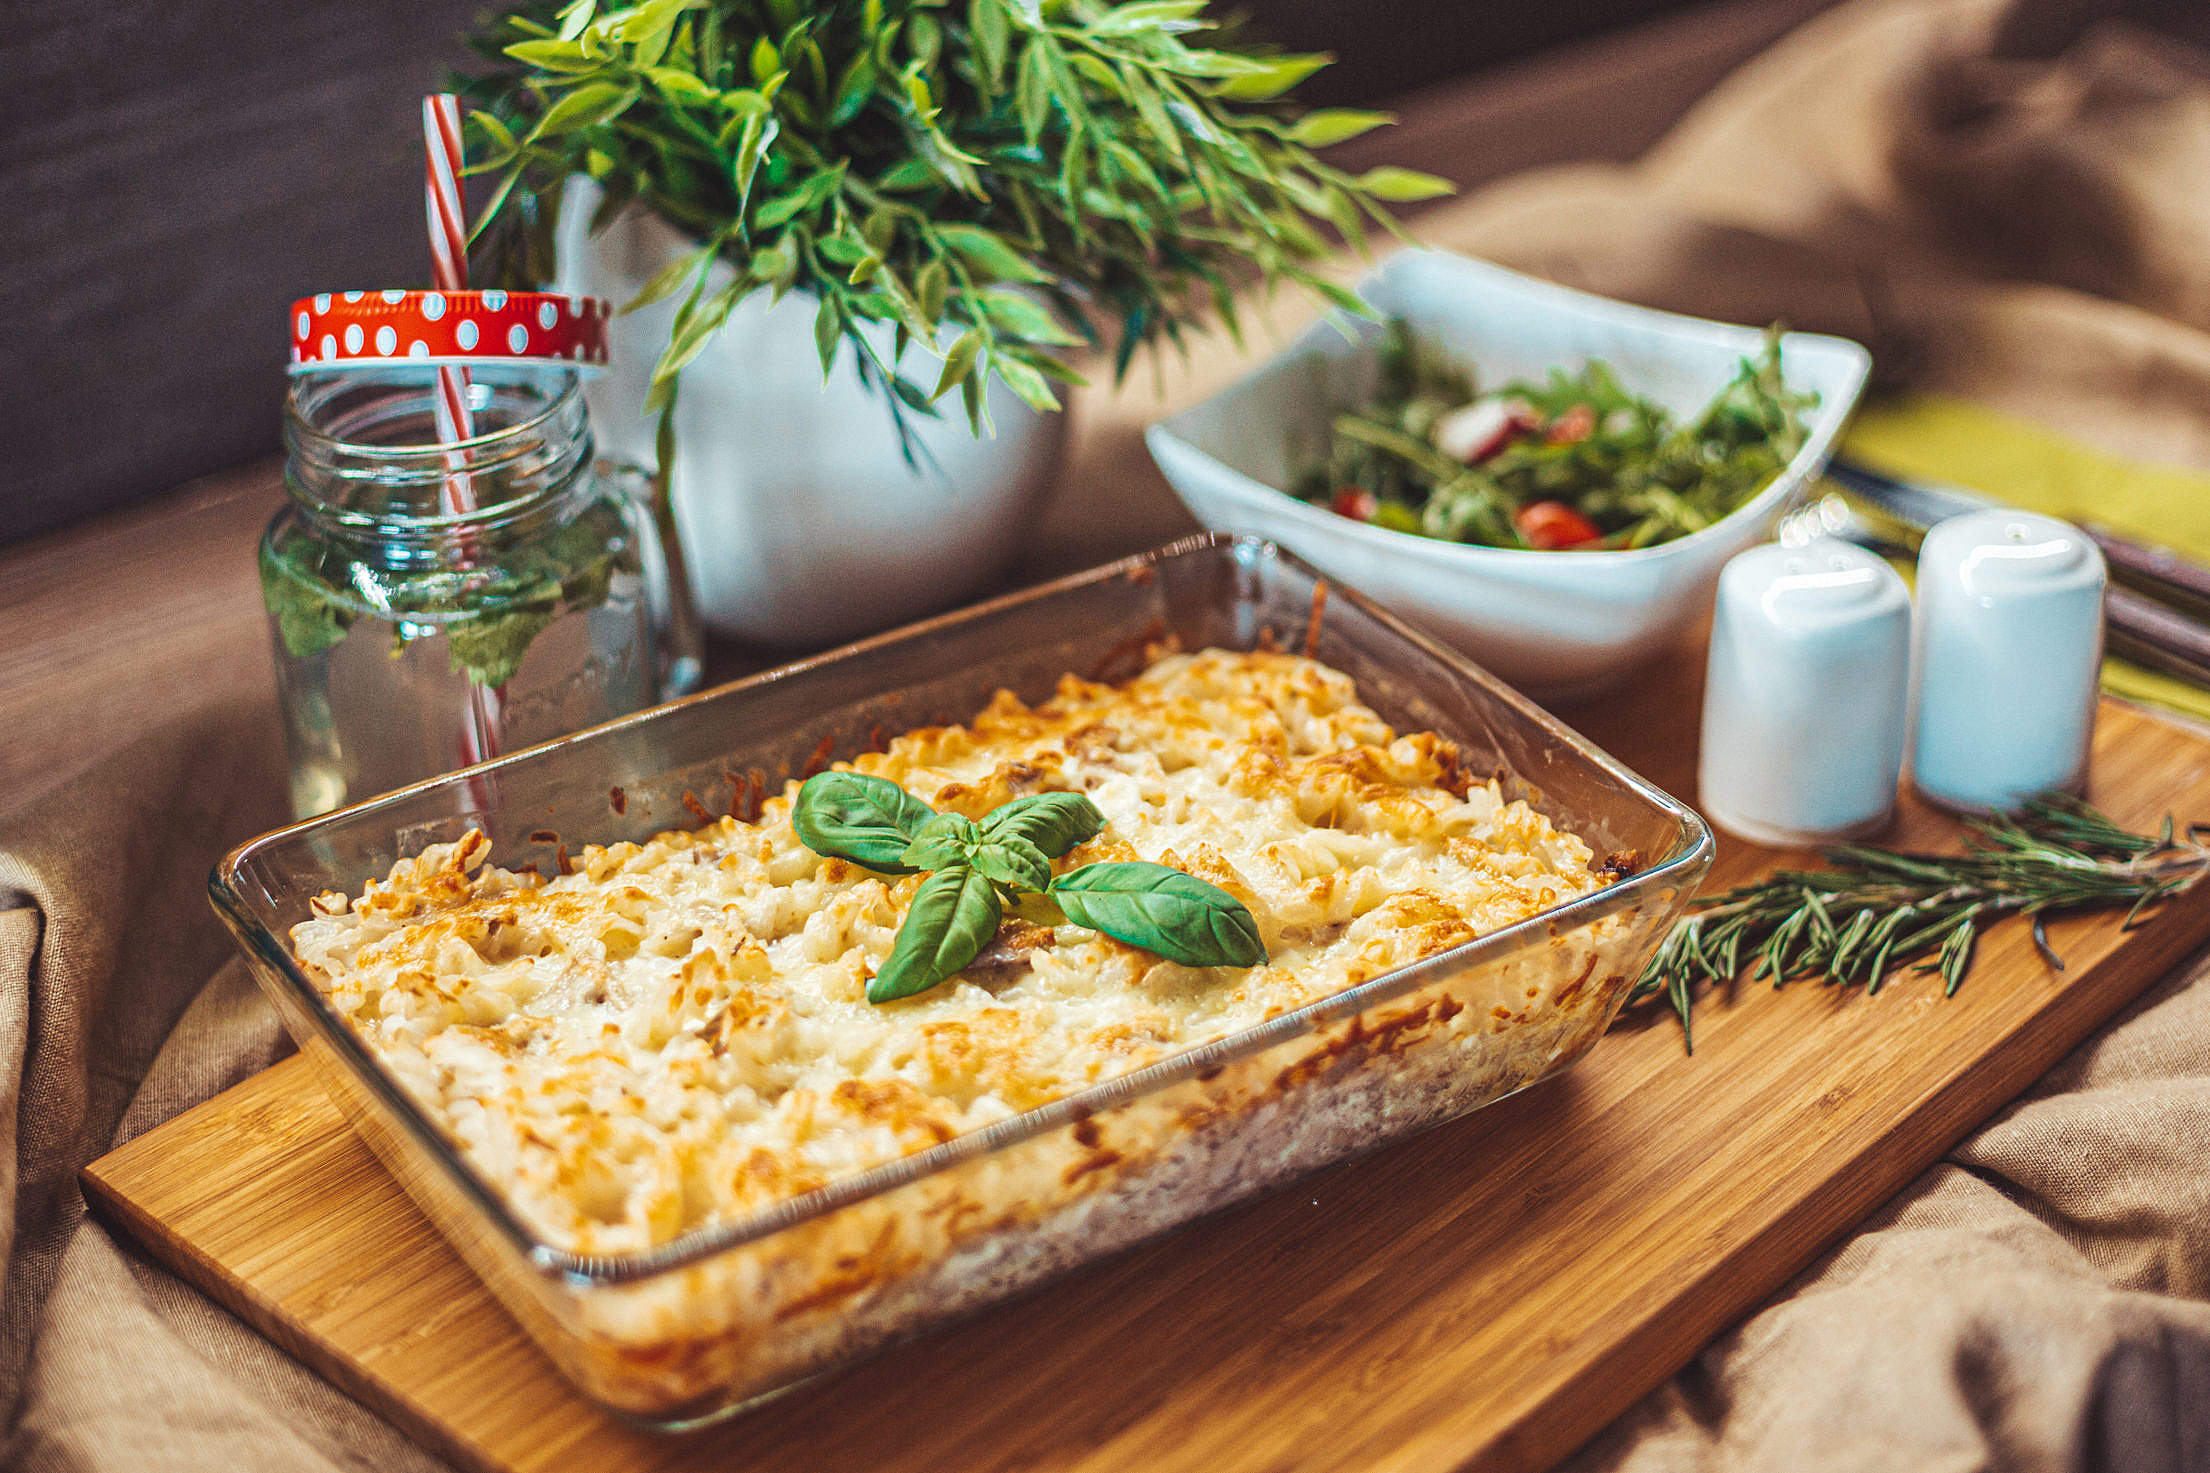 Baked Tuna Pasta Served on a Wooden Plate Free Stock Photo